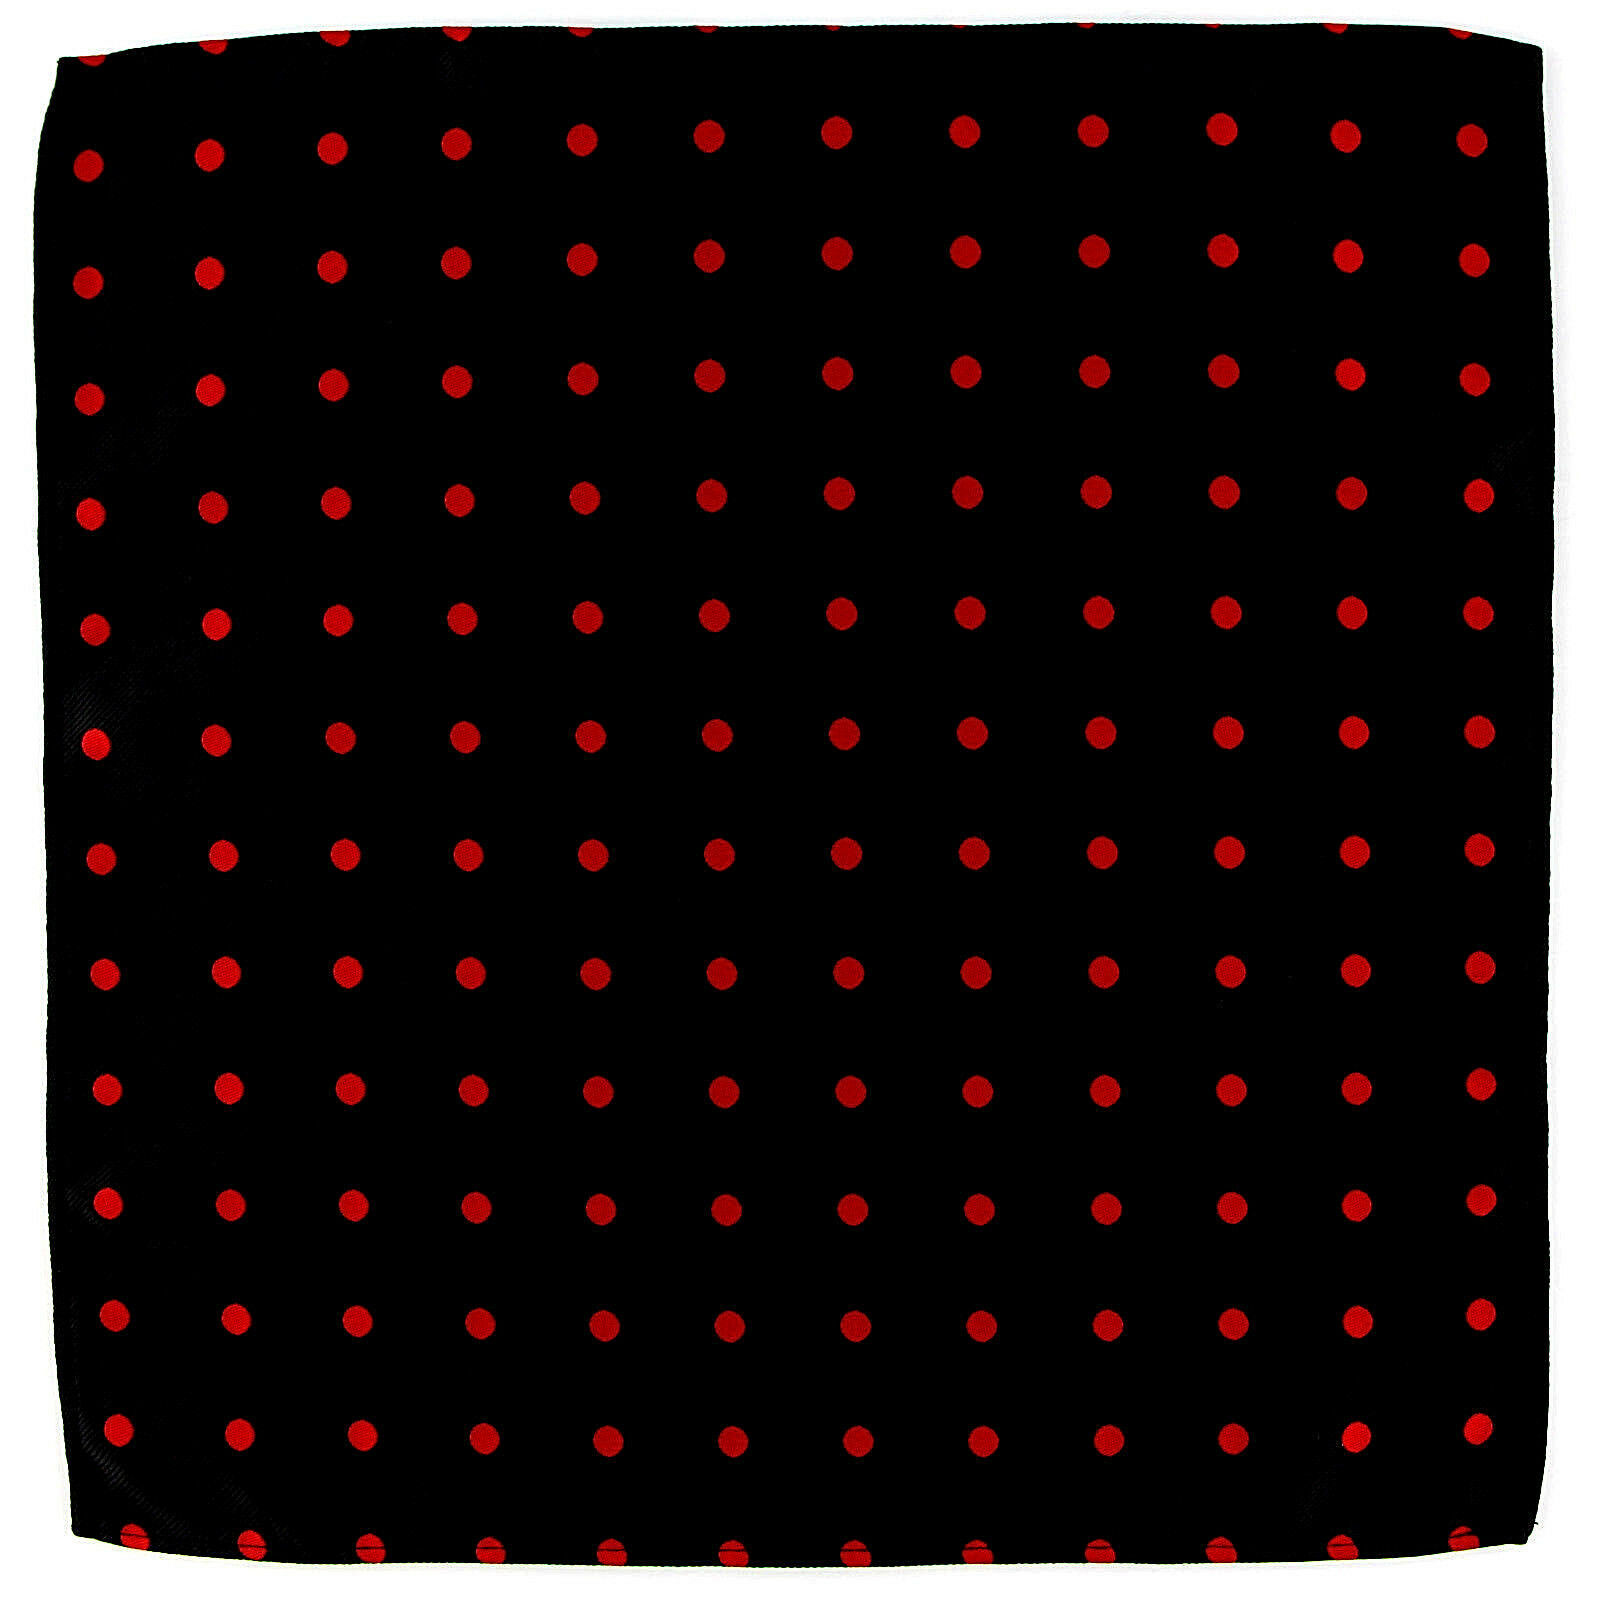 "Men's Pocket Square Black Red Polka Dot 10"" Dress Suit Handkerchief Hanky New"